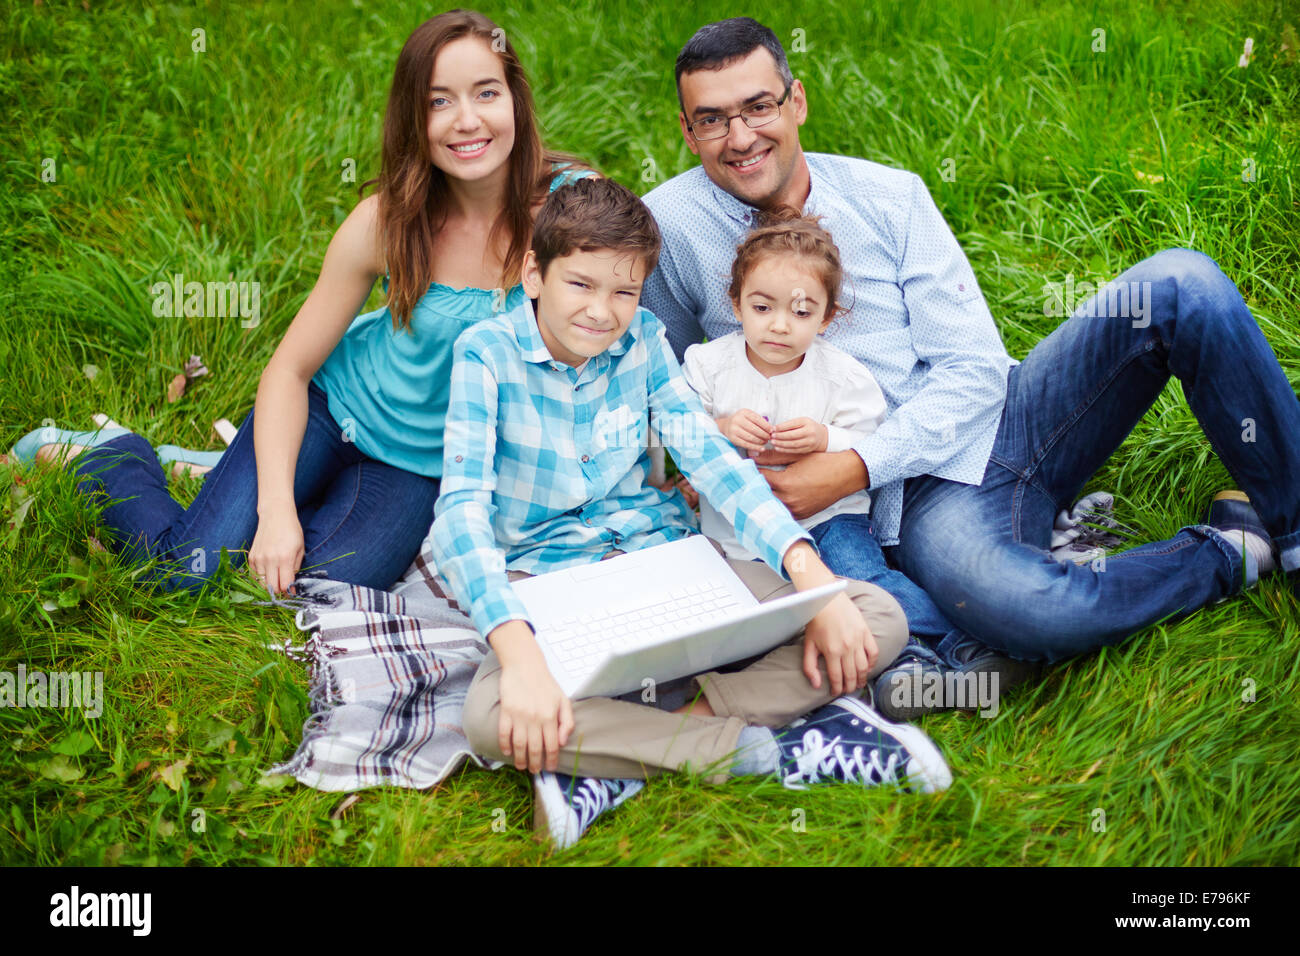 Cute kids and their parents spending time in the park - Stock Image